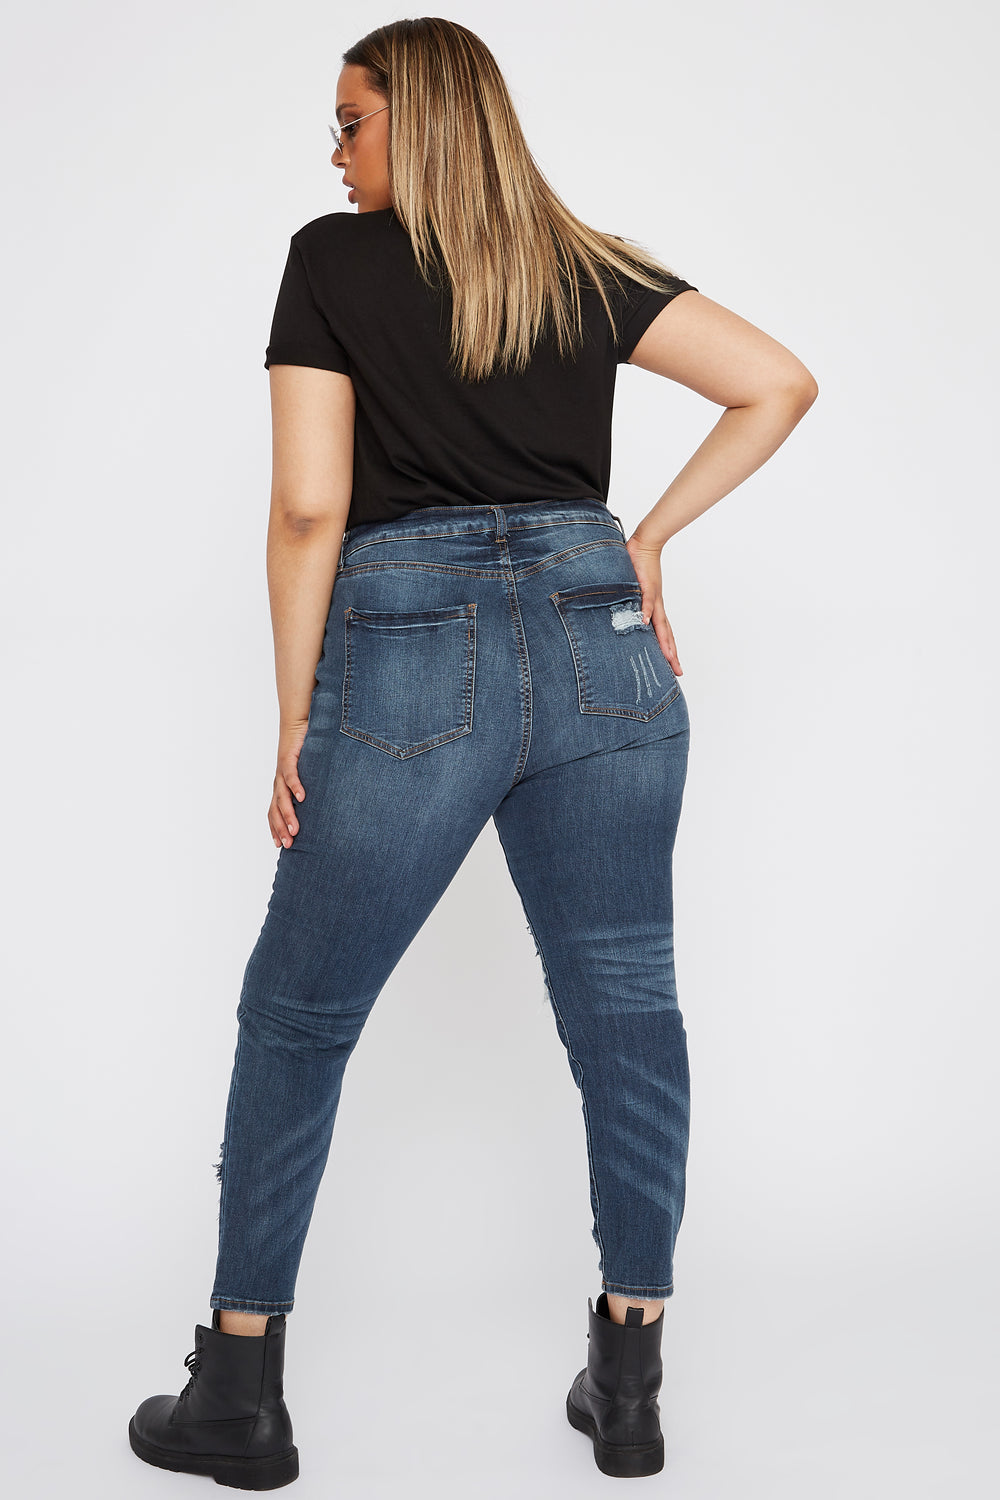 Refuge Plus Size High-Rise Distressed Dark Wash Skinny Boyfriend Jean Dark Blue